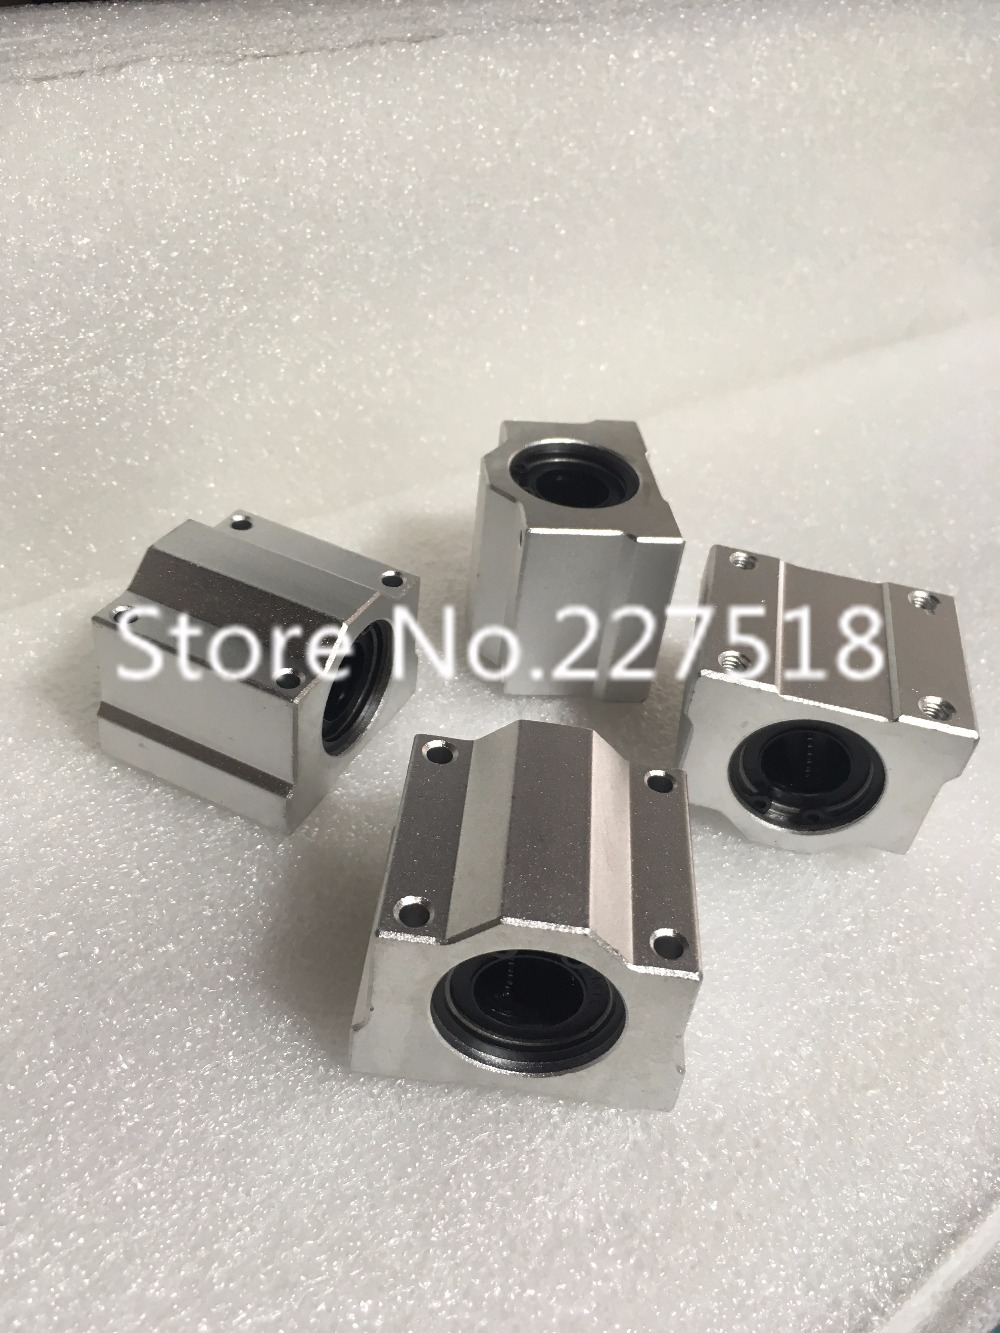 4pcs SCS25UU 25mm linear guide Linear axis ball bearing block with LM25UU bush, pillow block linear unit for CNC part 1pc scv40 scv40uu sc40vuu 40mm linear bearing bush bushing sc40vuu with lm40uu bearing inside for cnc